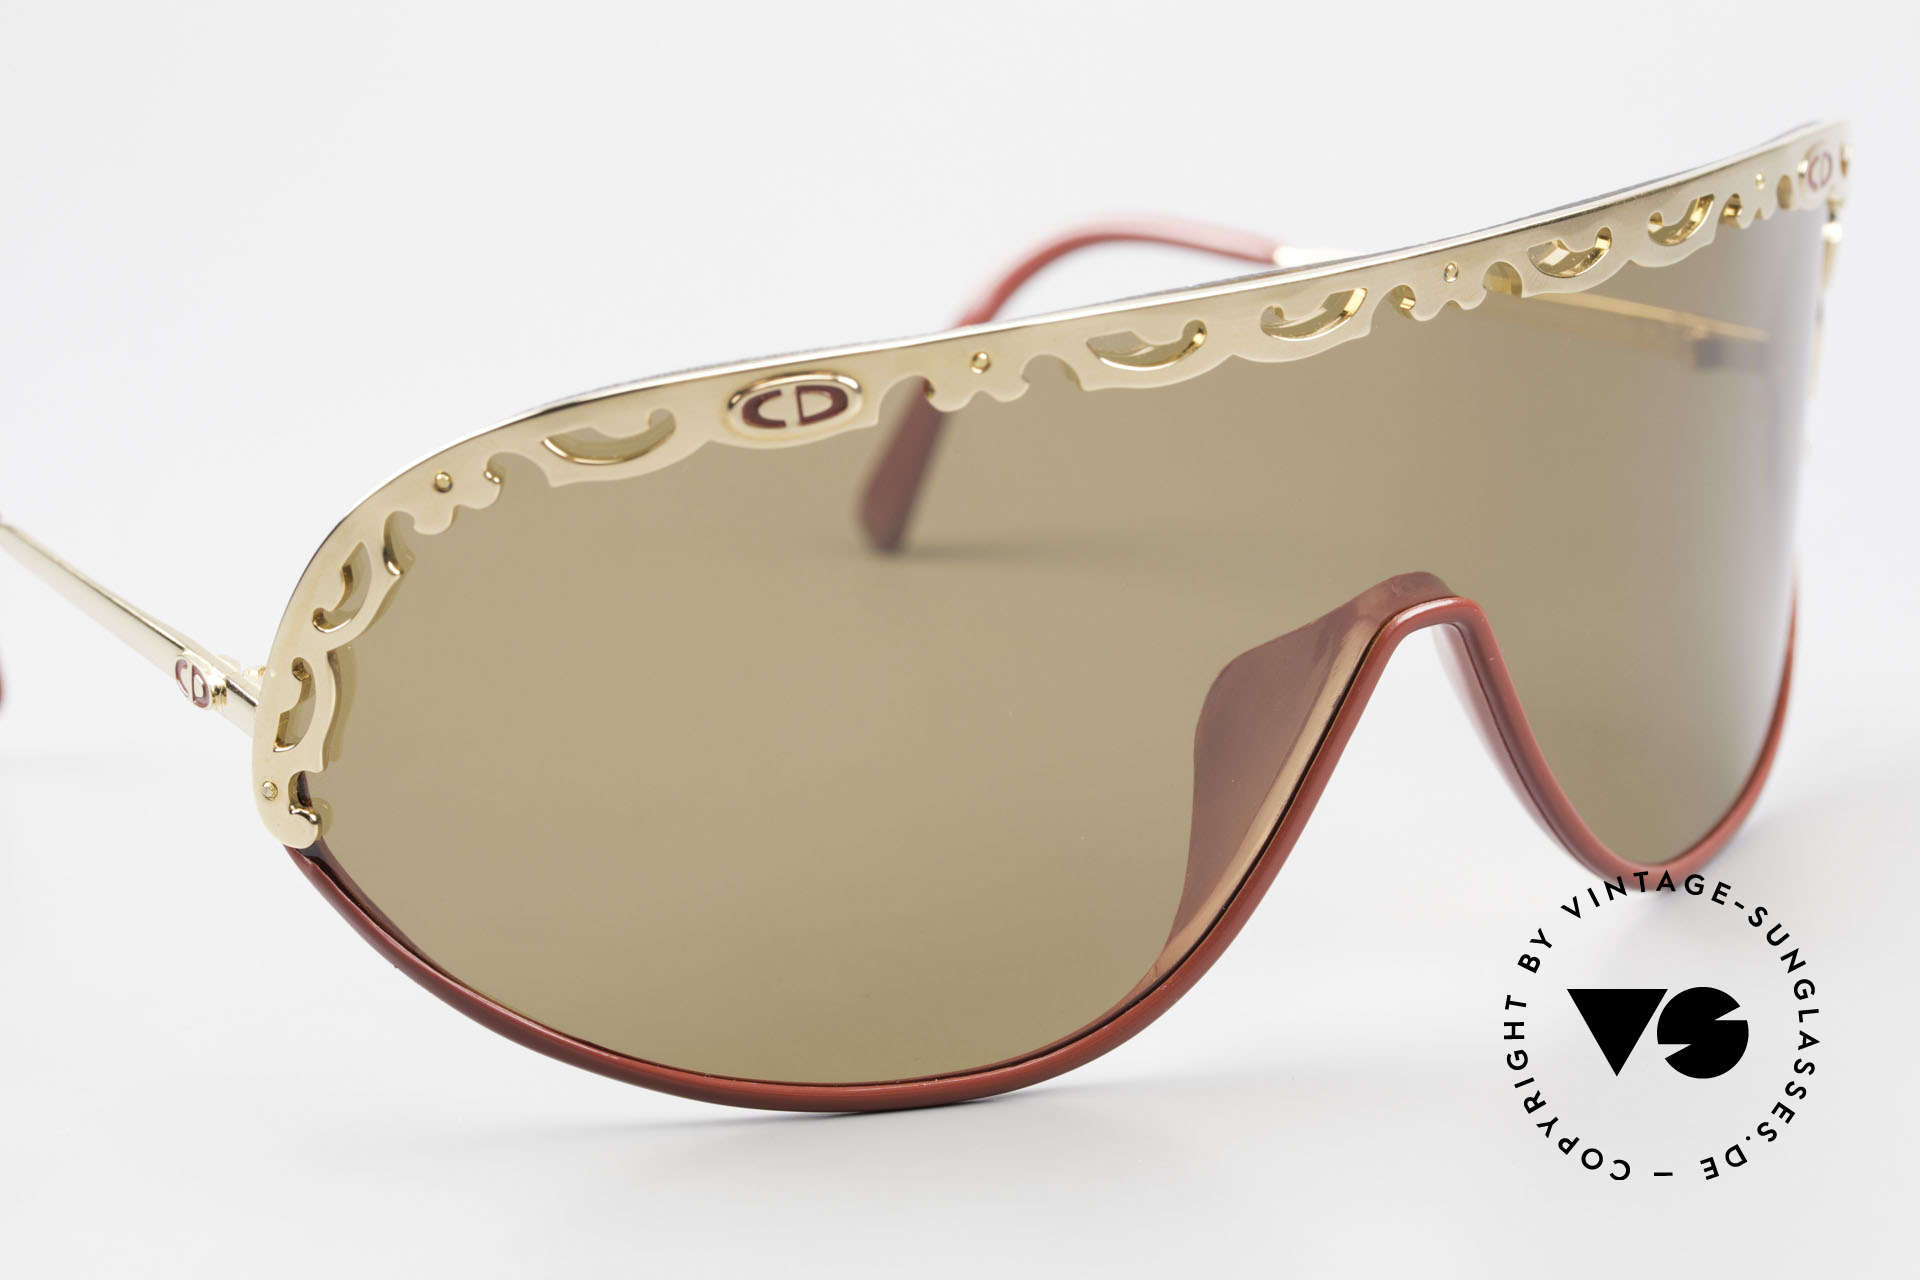 Christian Dior 2501 Panorama View Sunglasses 80's, new old stock (like all our 80's / 90's C. Dior originals), Made for Women